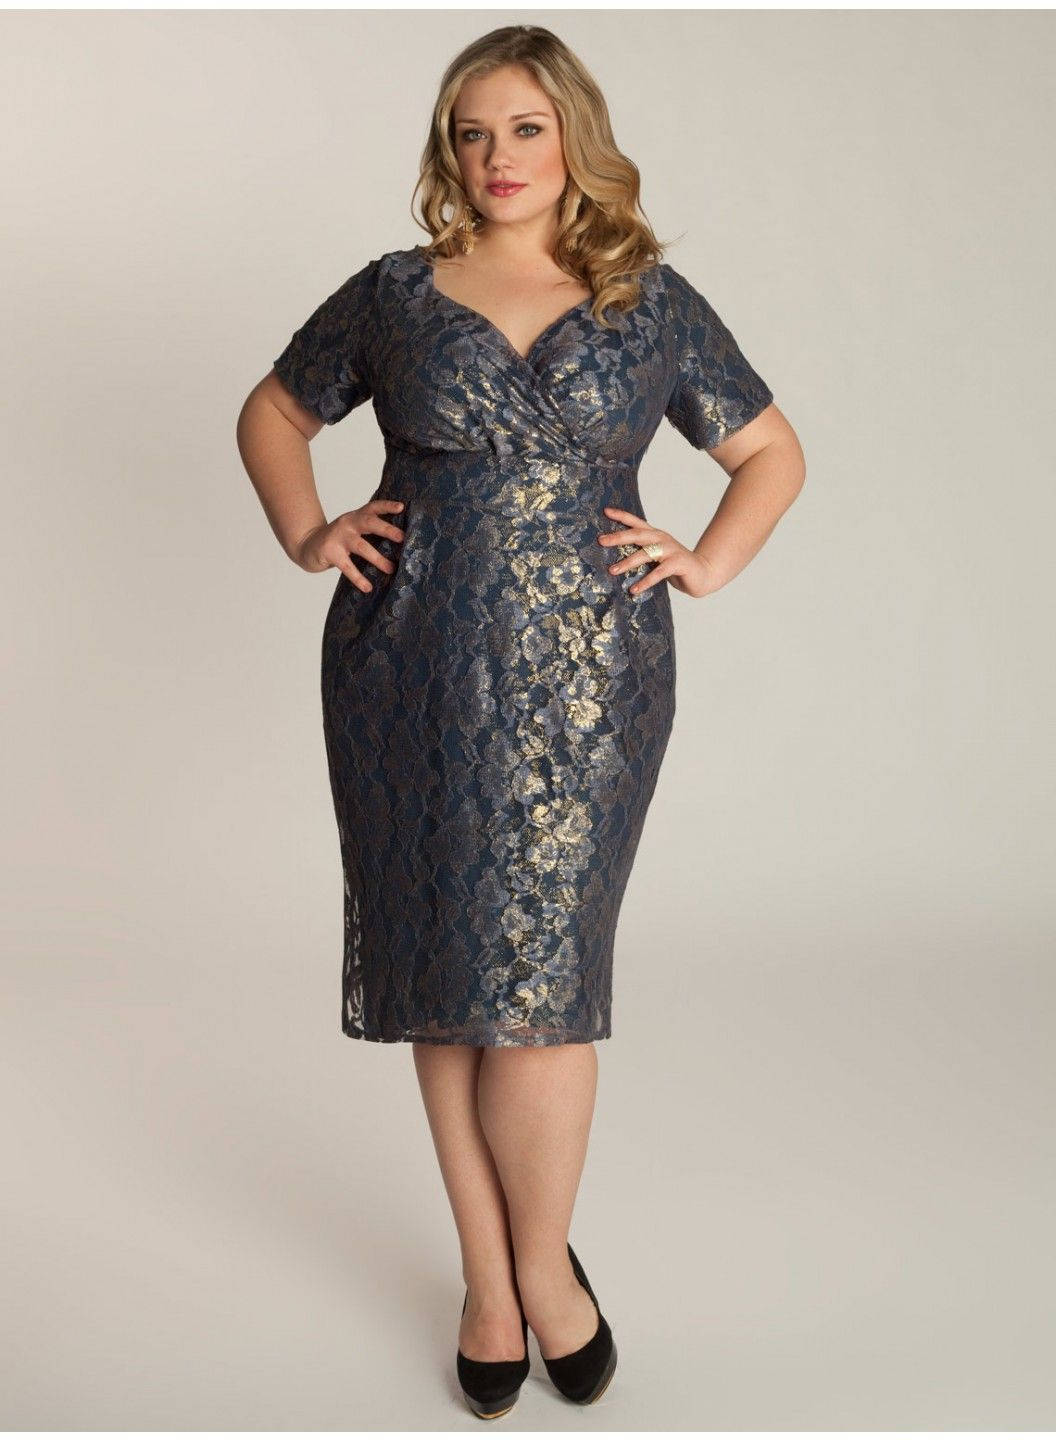 elegant plus size dresses images - dresses design ideas